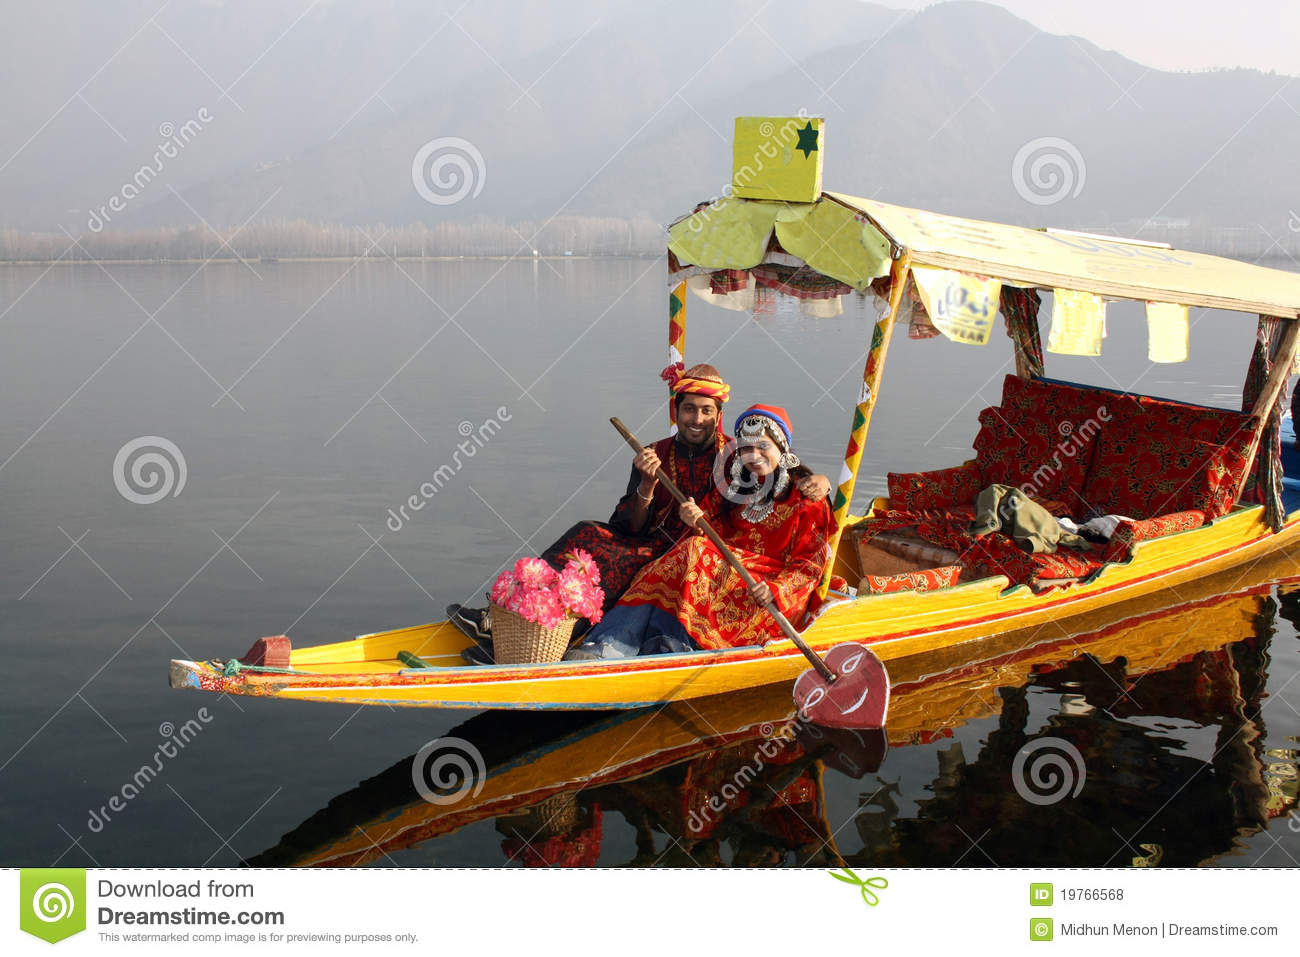 68e512581a North Indian Couple Riding Shikara Boat Stock Photo - Image of ...